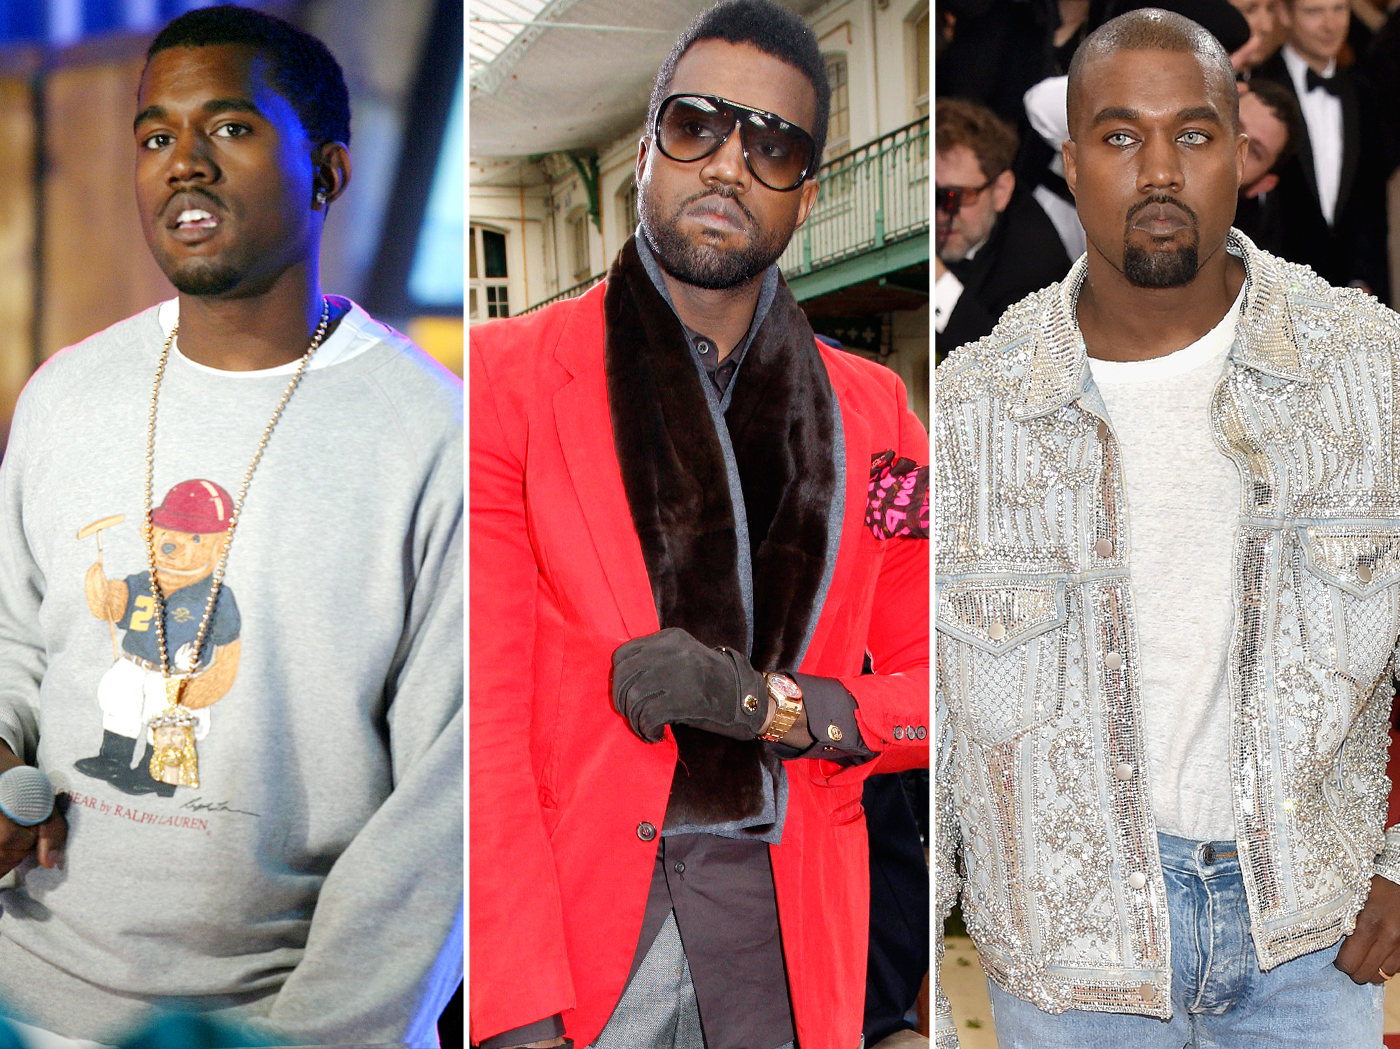 See Kanye West's Incredible Style Evolution